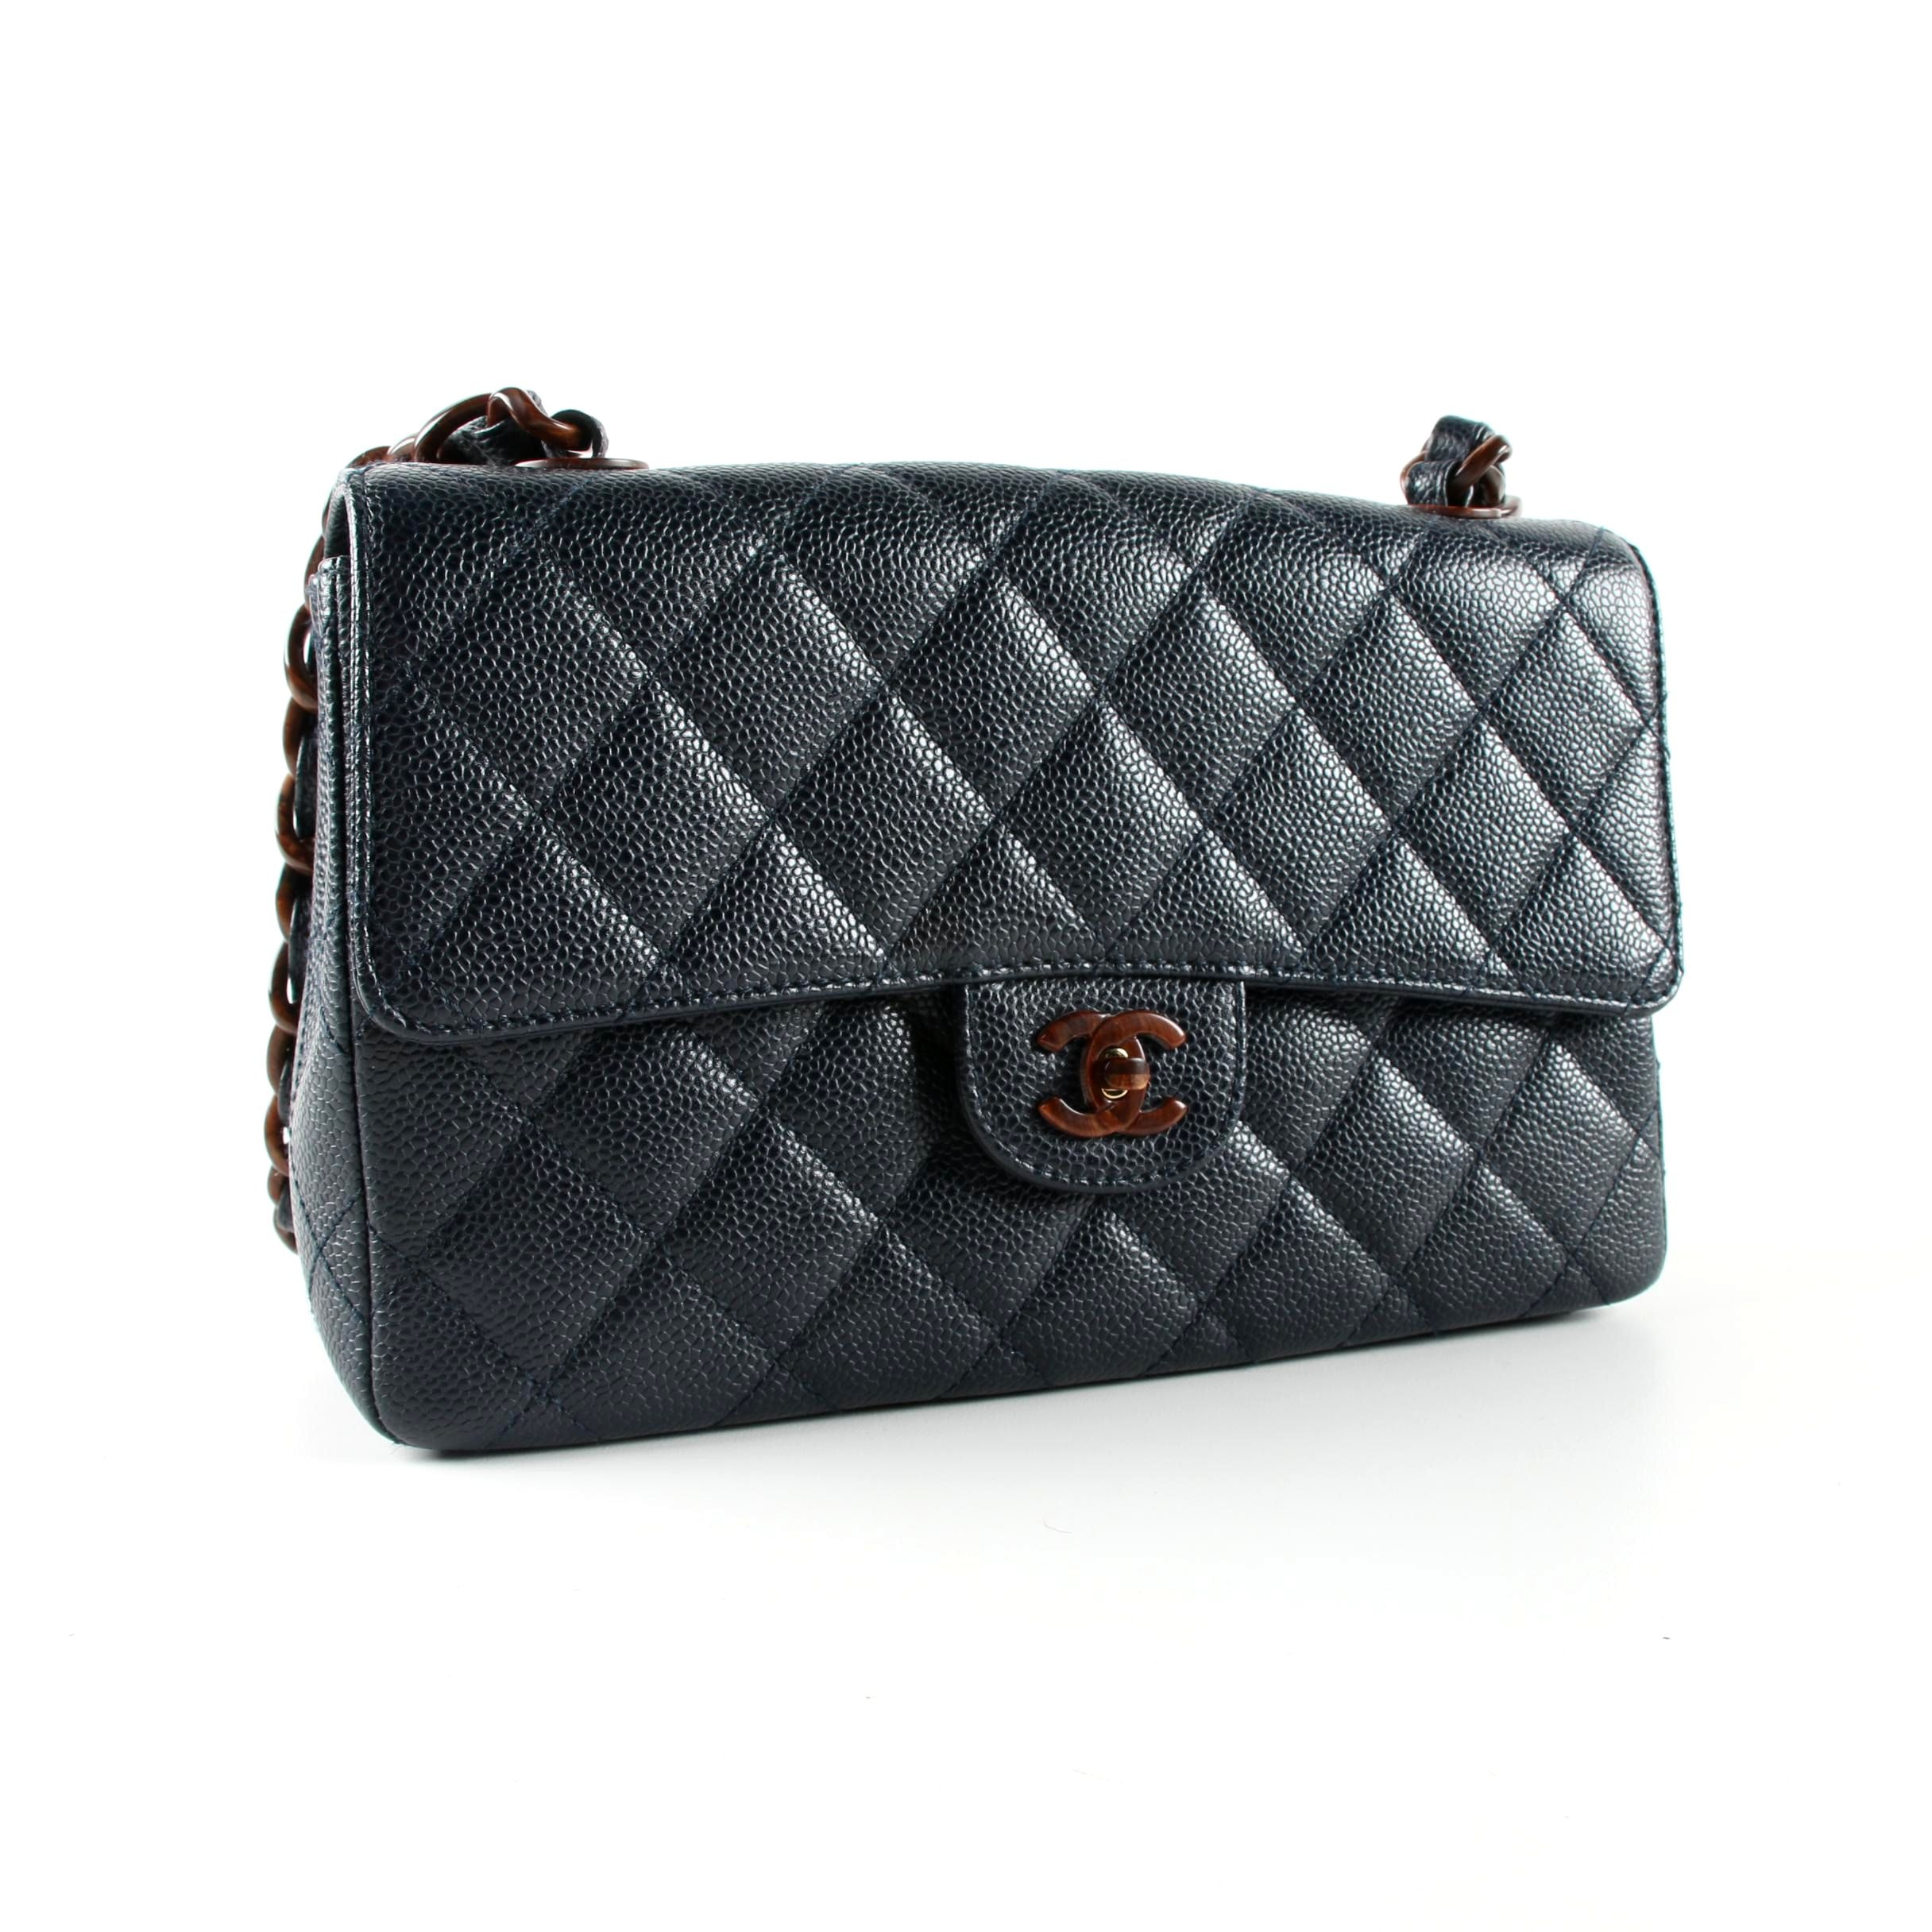 Chanel Navy Caviar Leather and Wood Chain Bag